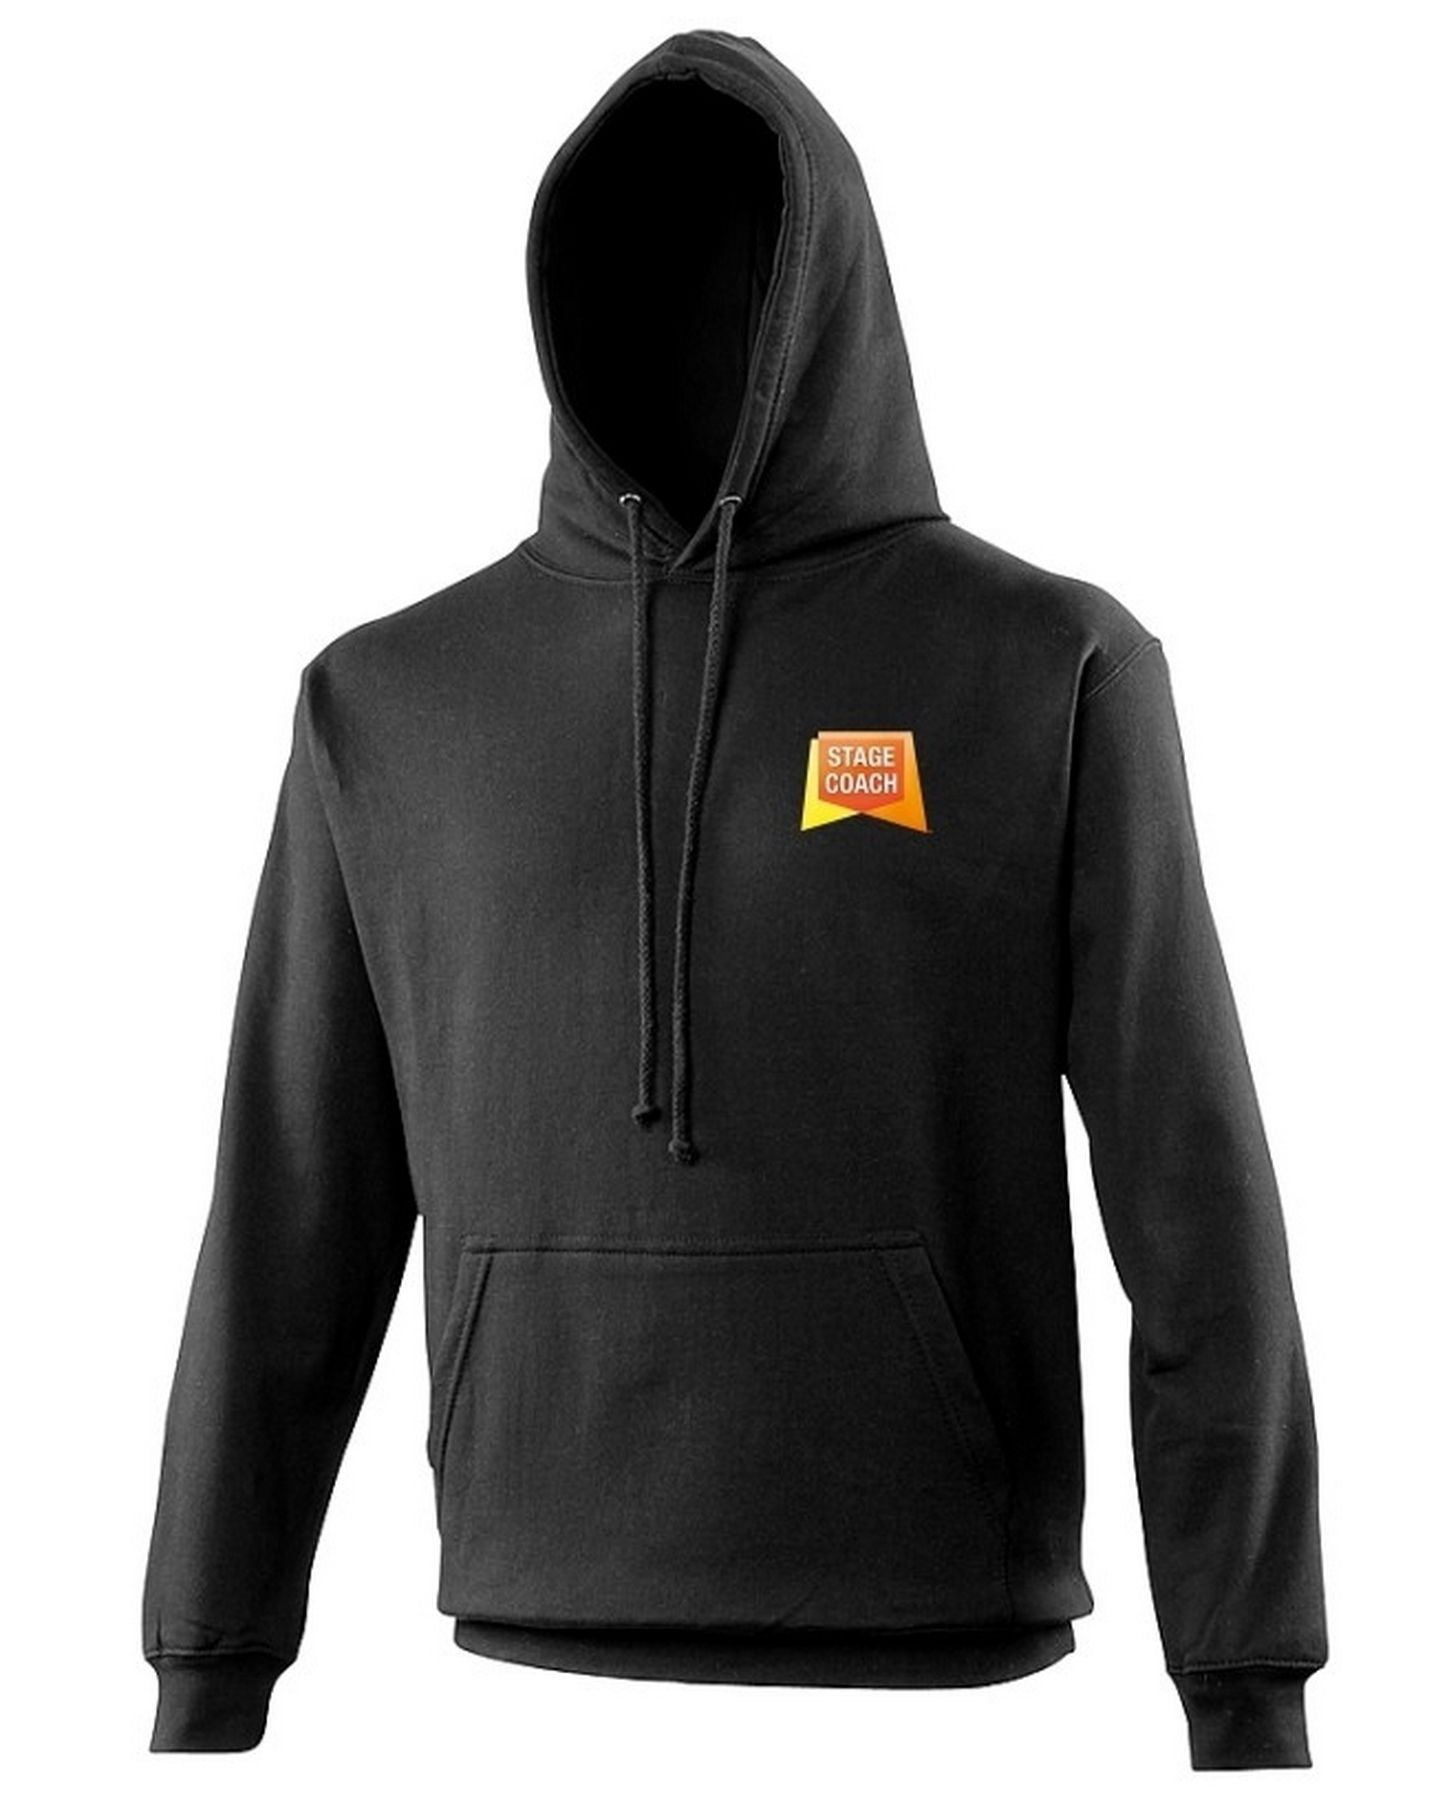 Stagecoach Huntingdon & Newmarket – Adult Hoodie